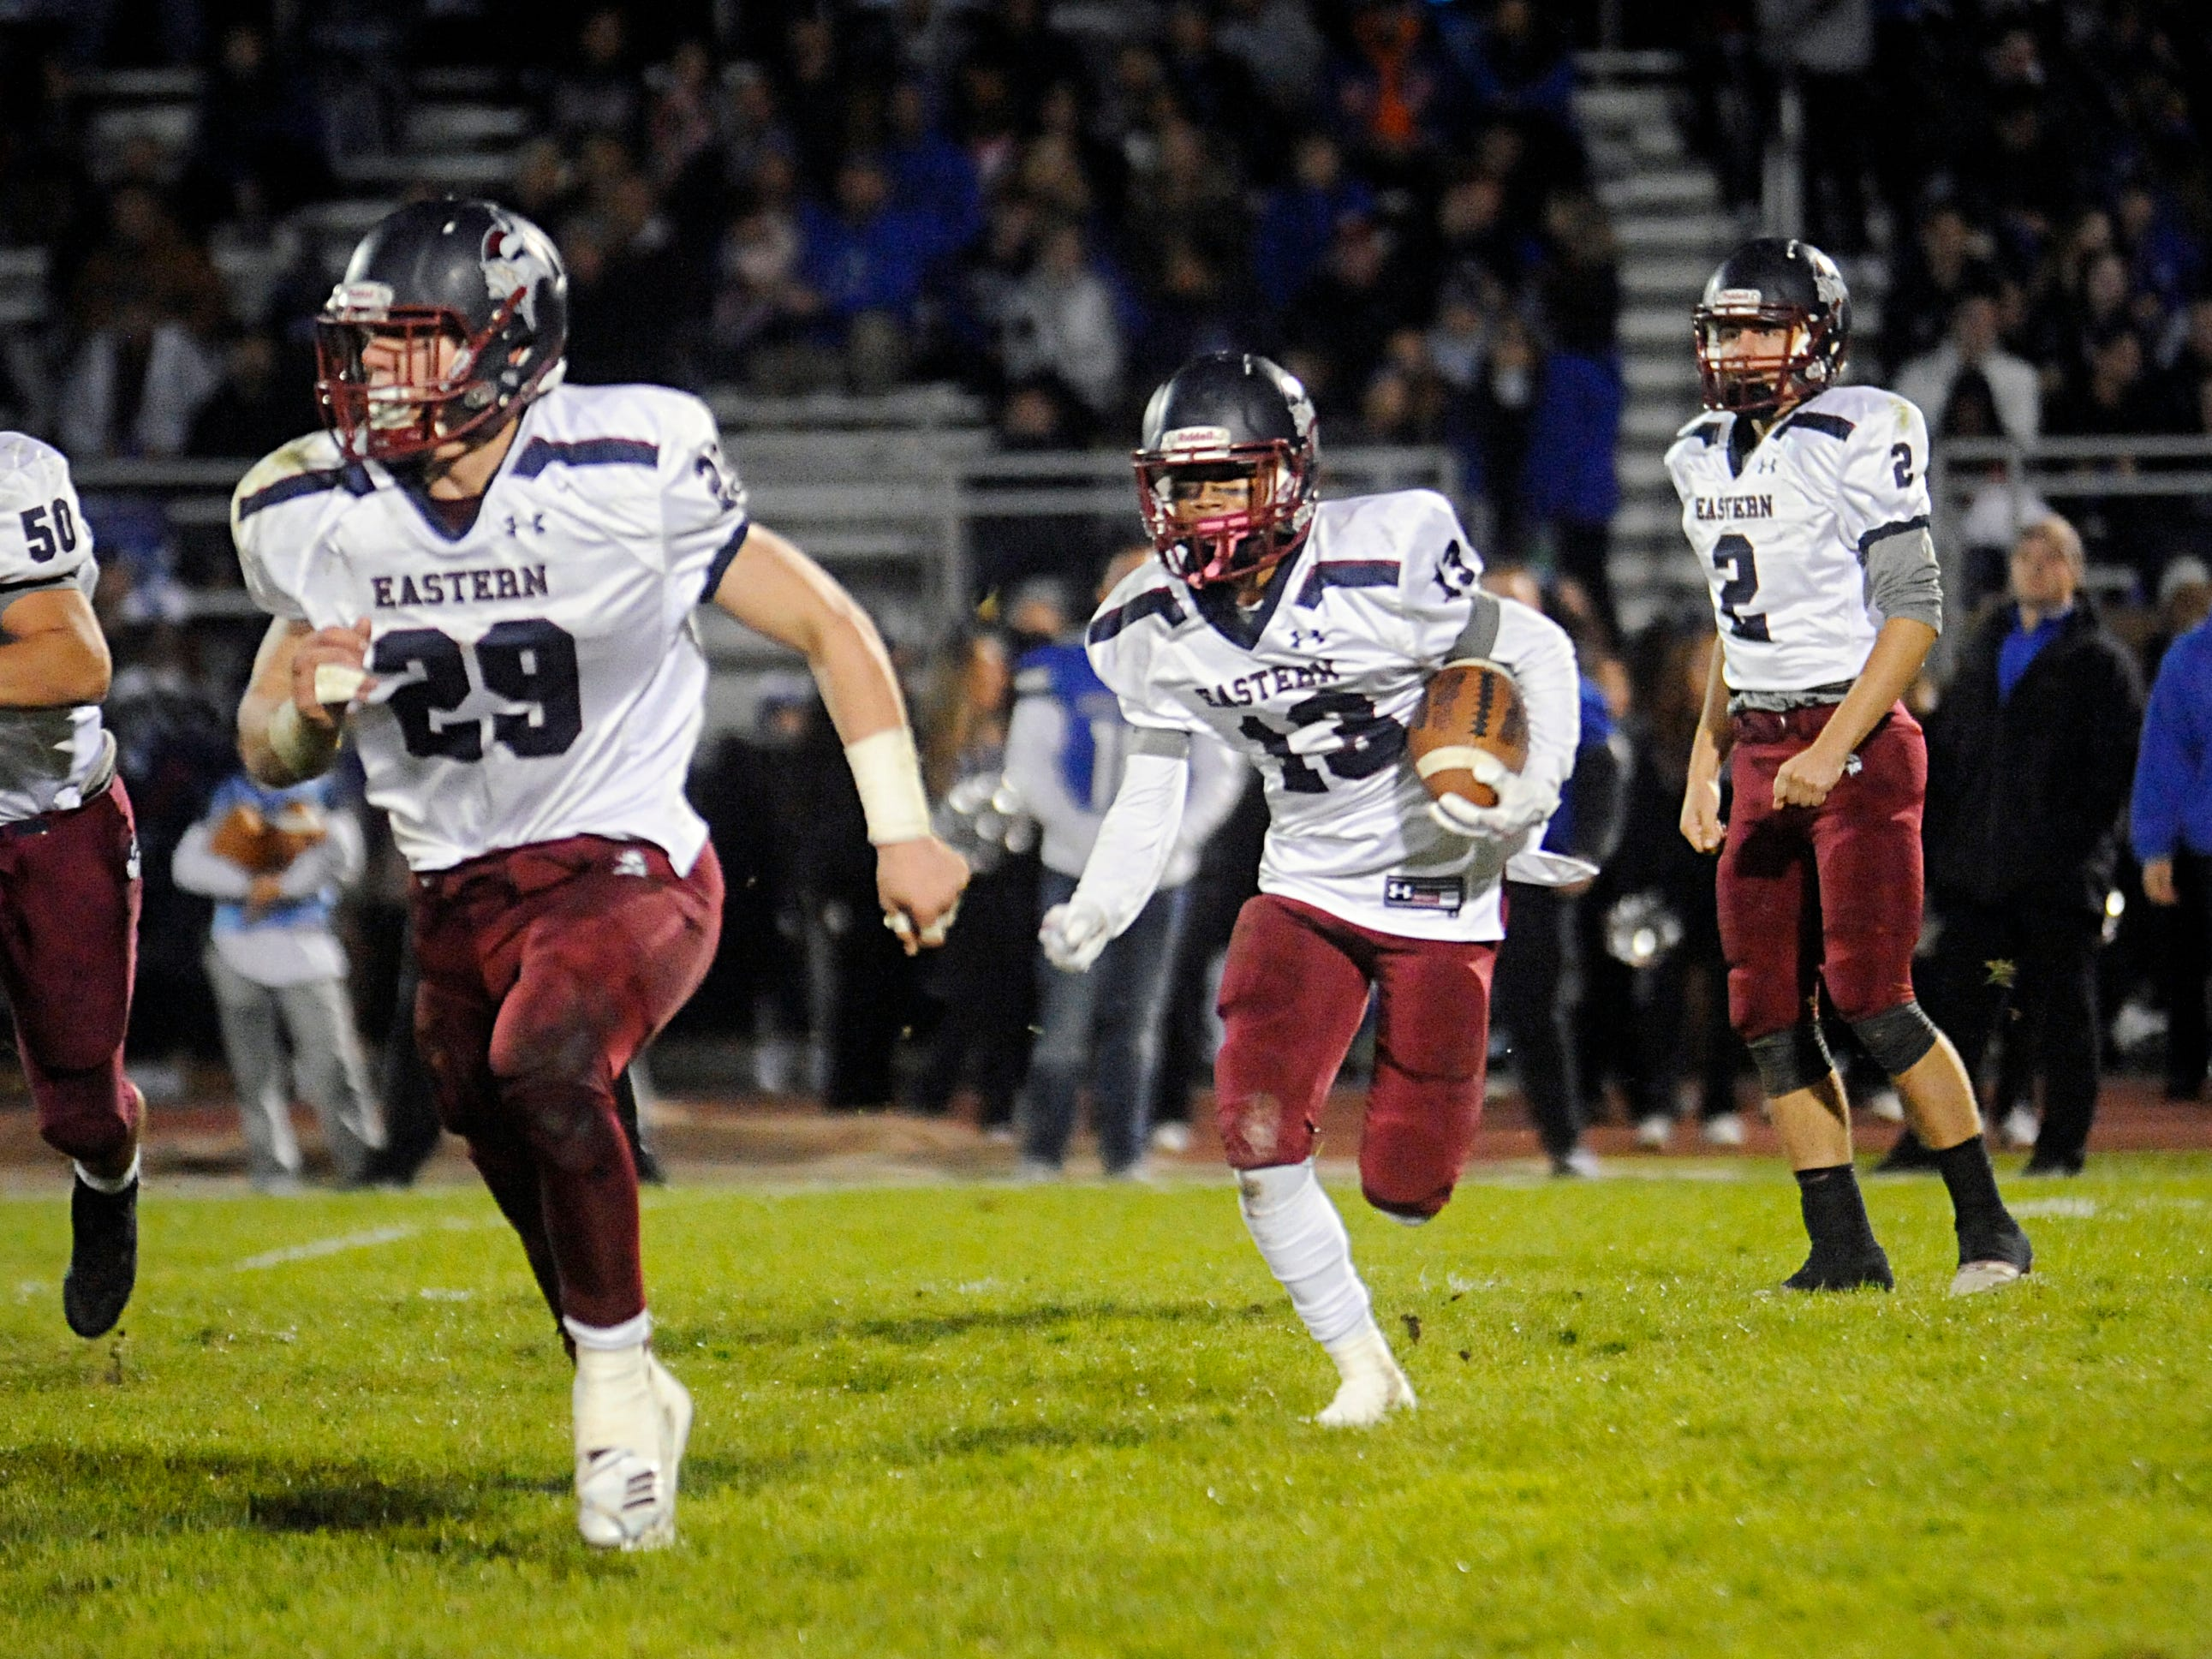 H.S. football: Eastern survives dogfight to extend winning streak